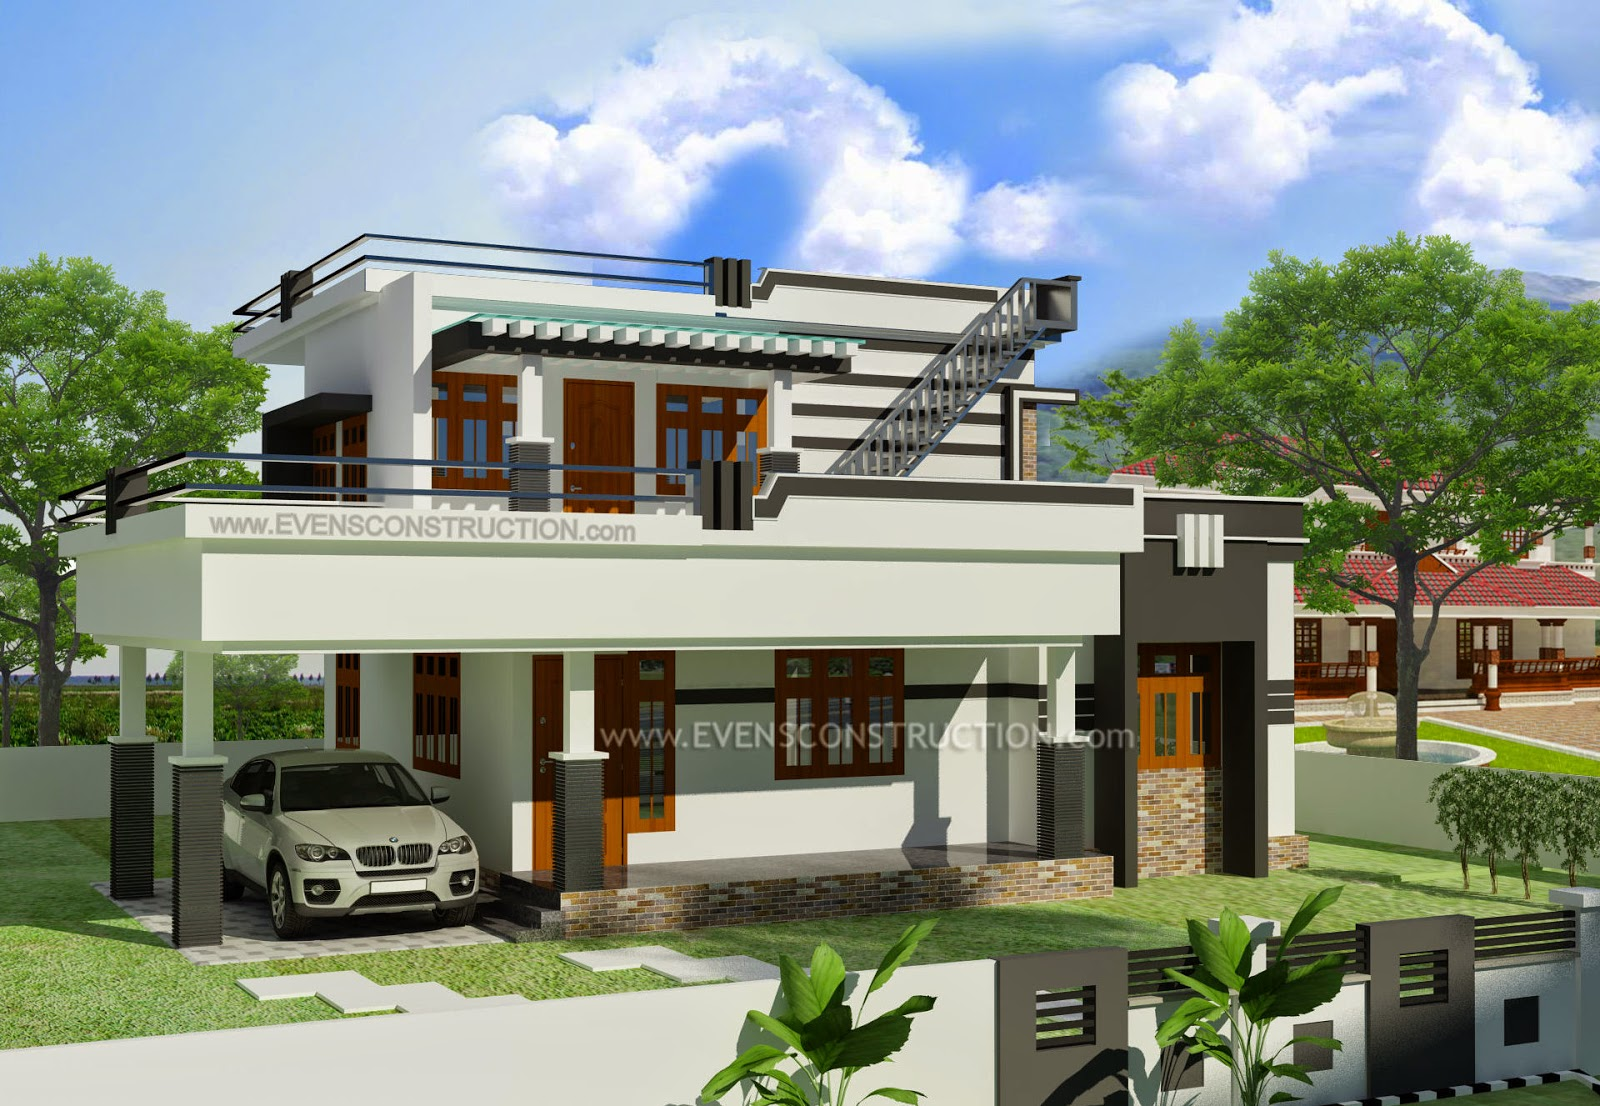 Front Elevation Of House With Flat Roof : Evens construction pvt ltd flat roof home